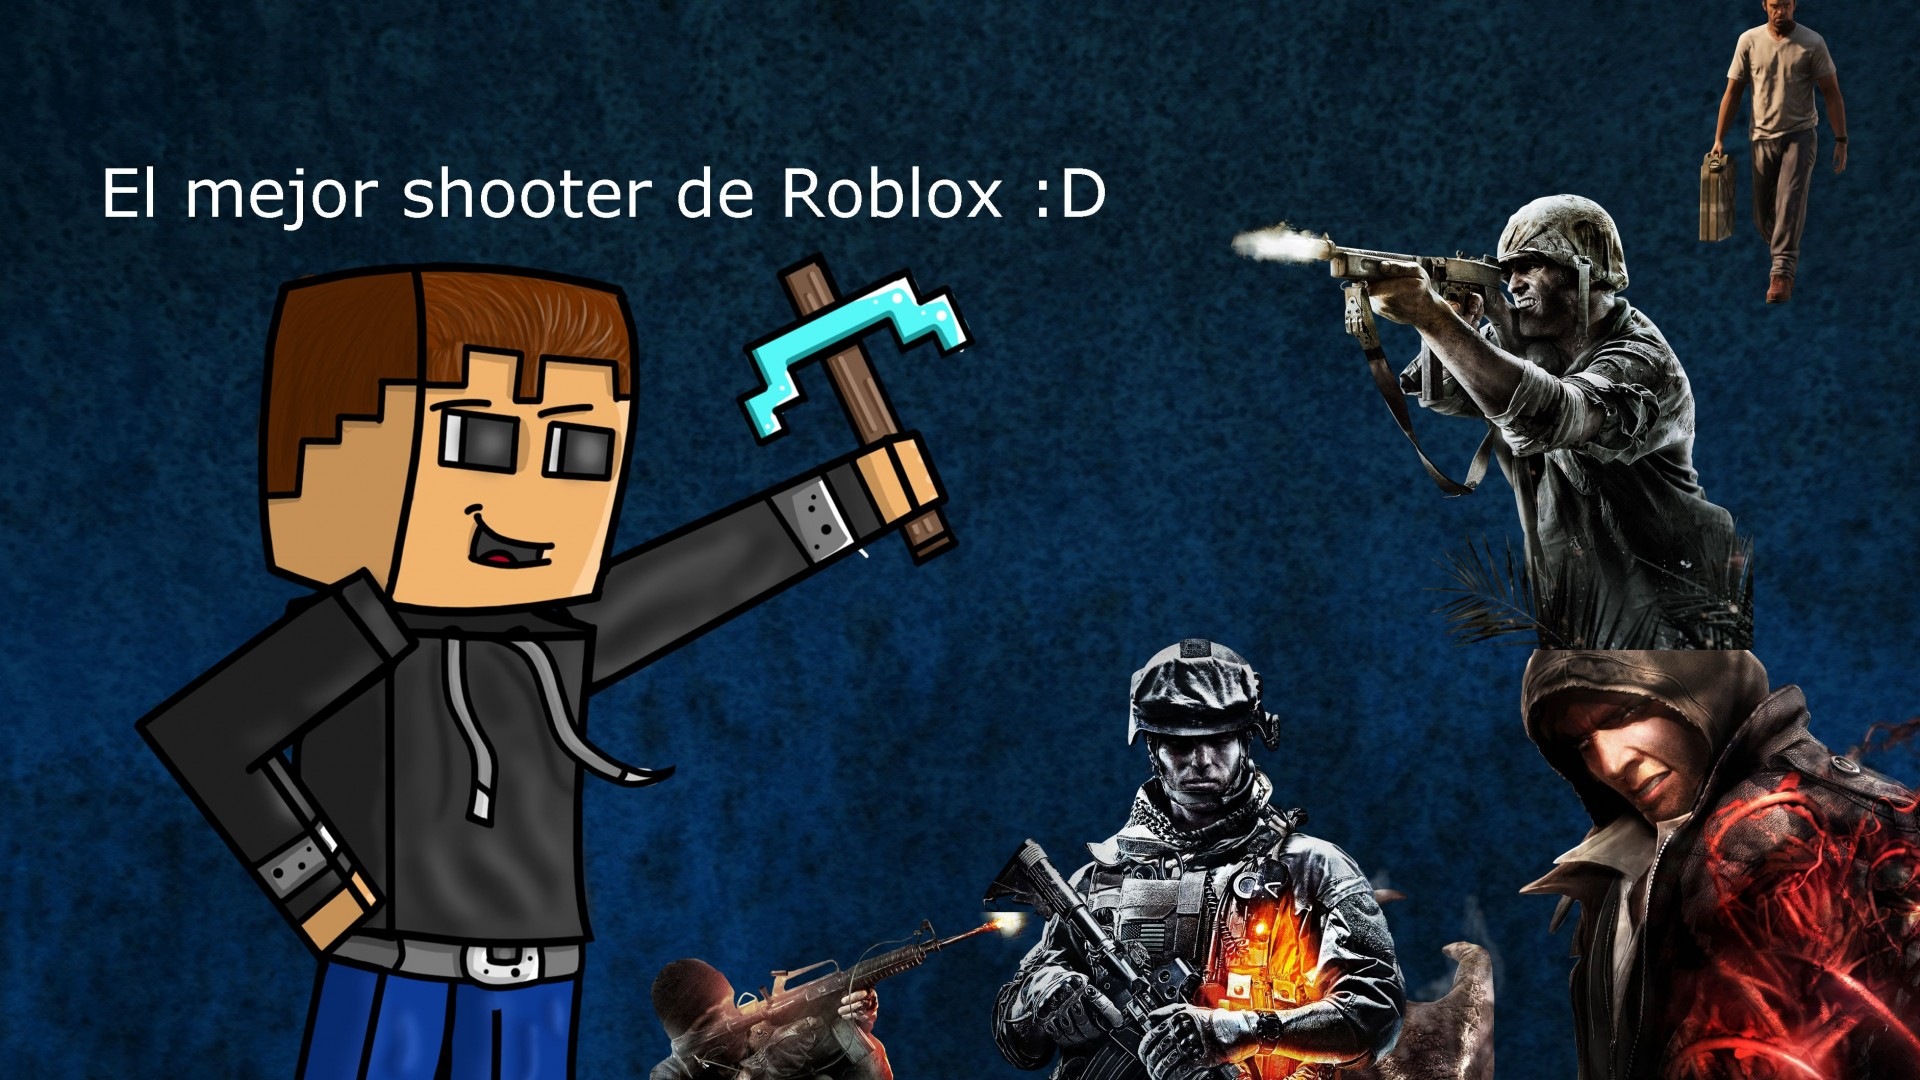 Roblox 1920x1080 Posted By Ethan Anderson